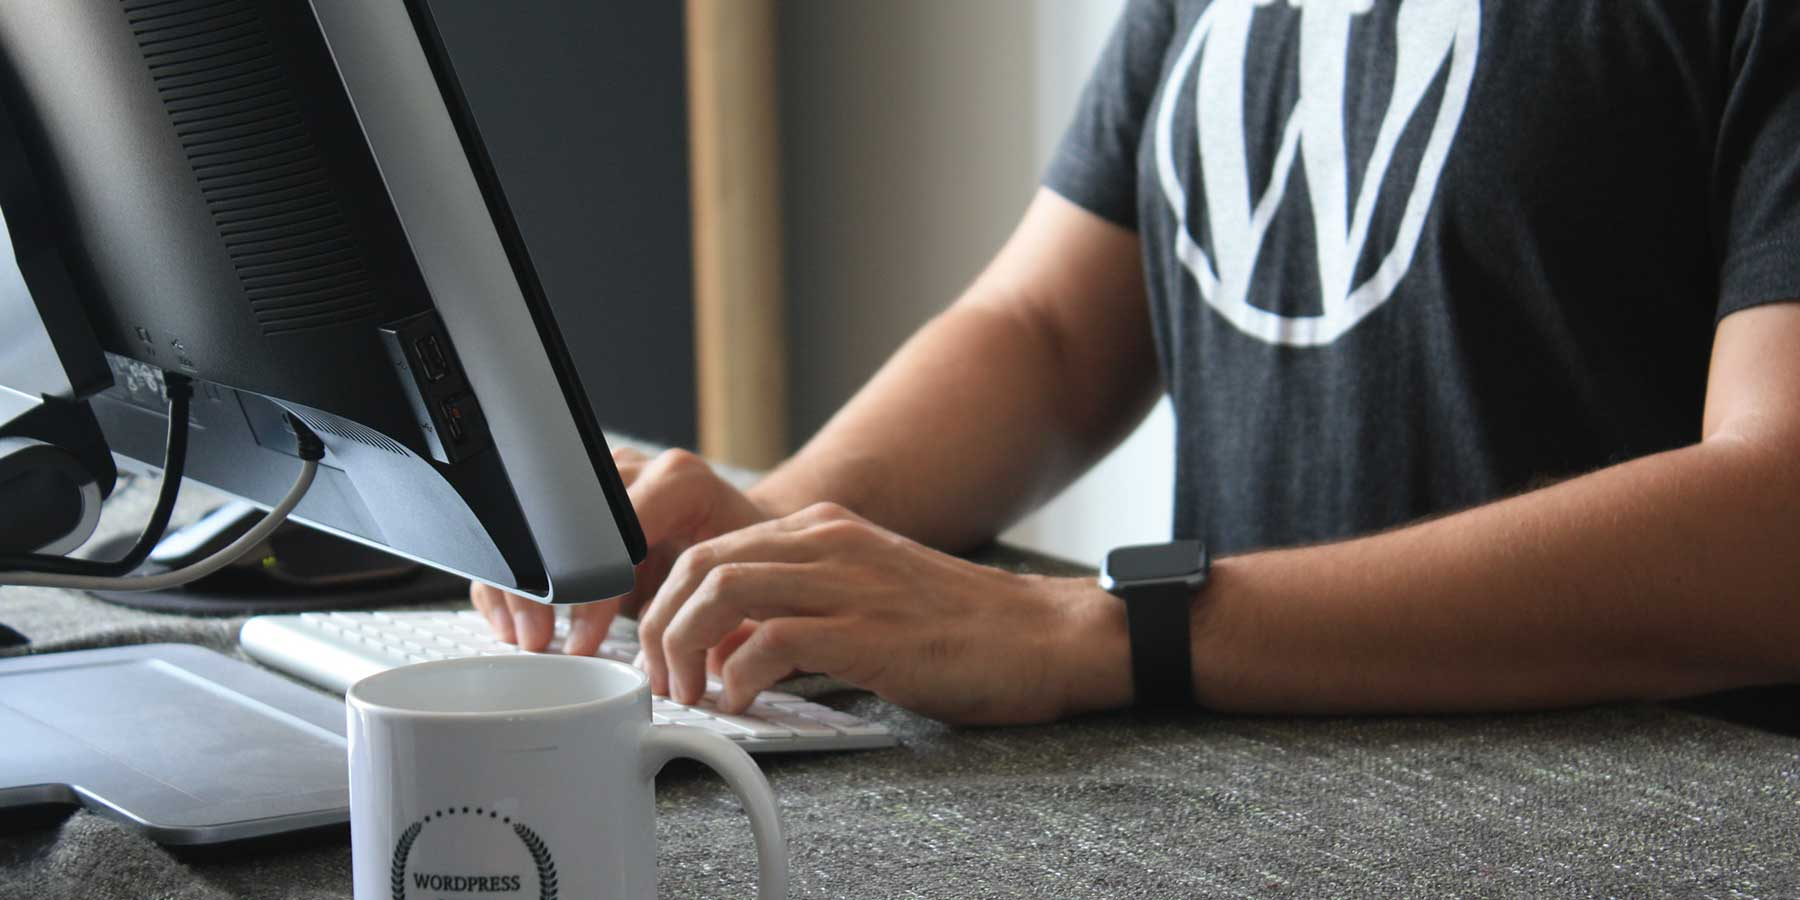 20 Reasons Why You Should Use WordPress For Your Website